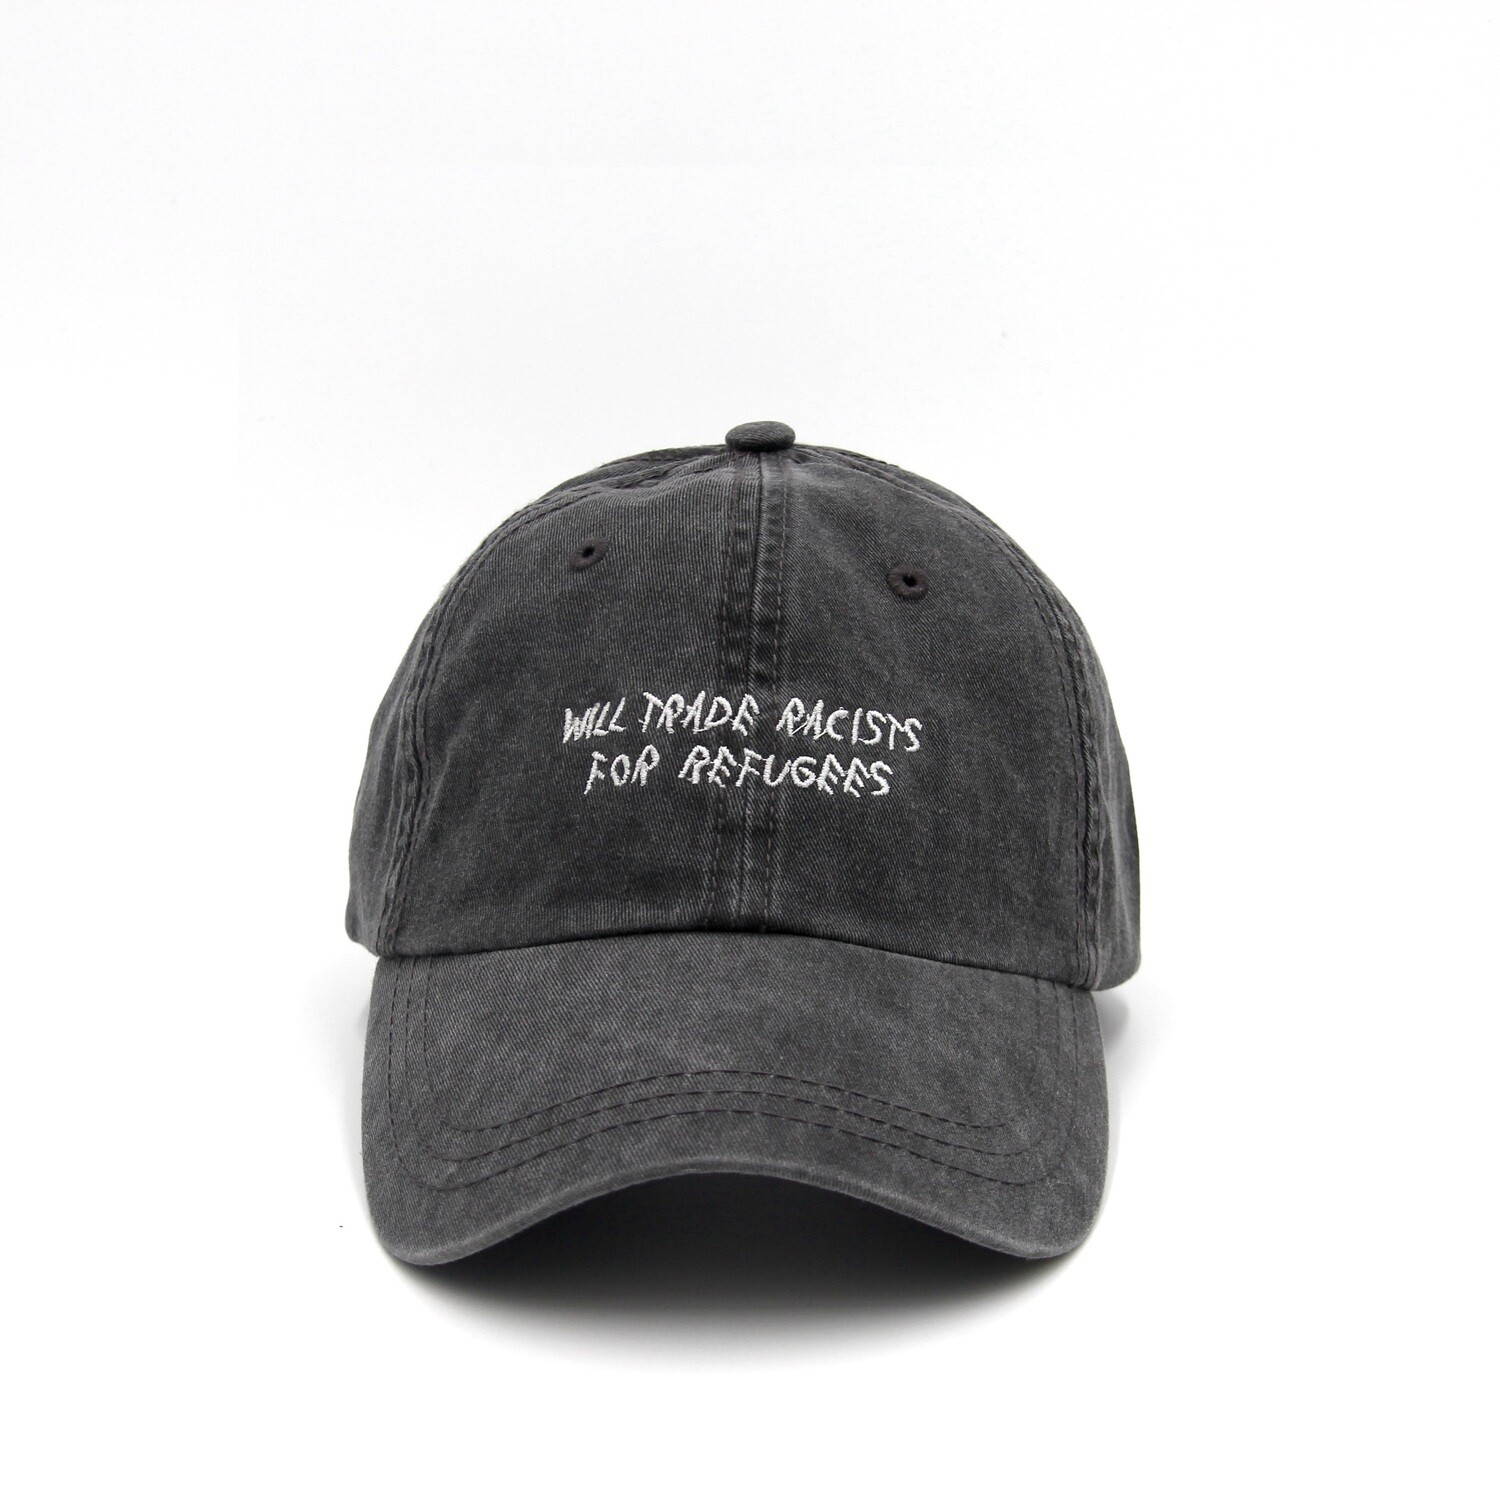 Trade Racists For Refugees Gray Dad Cap